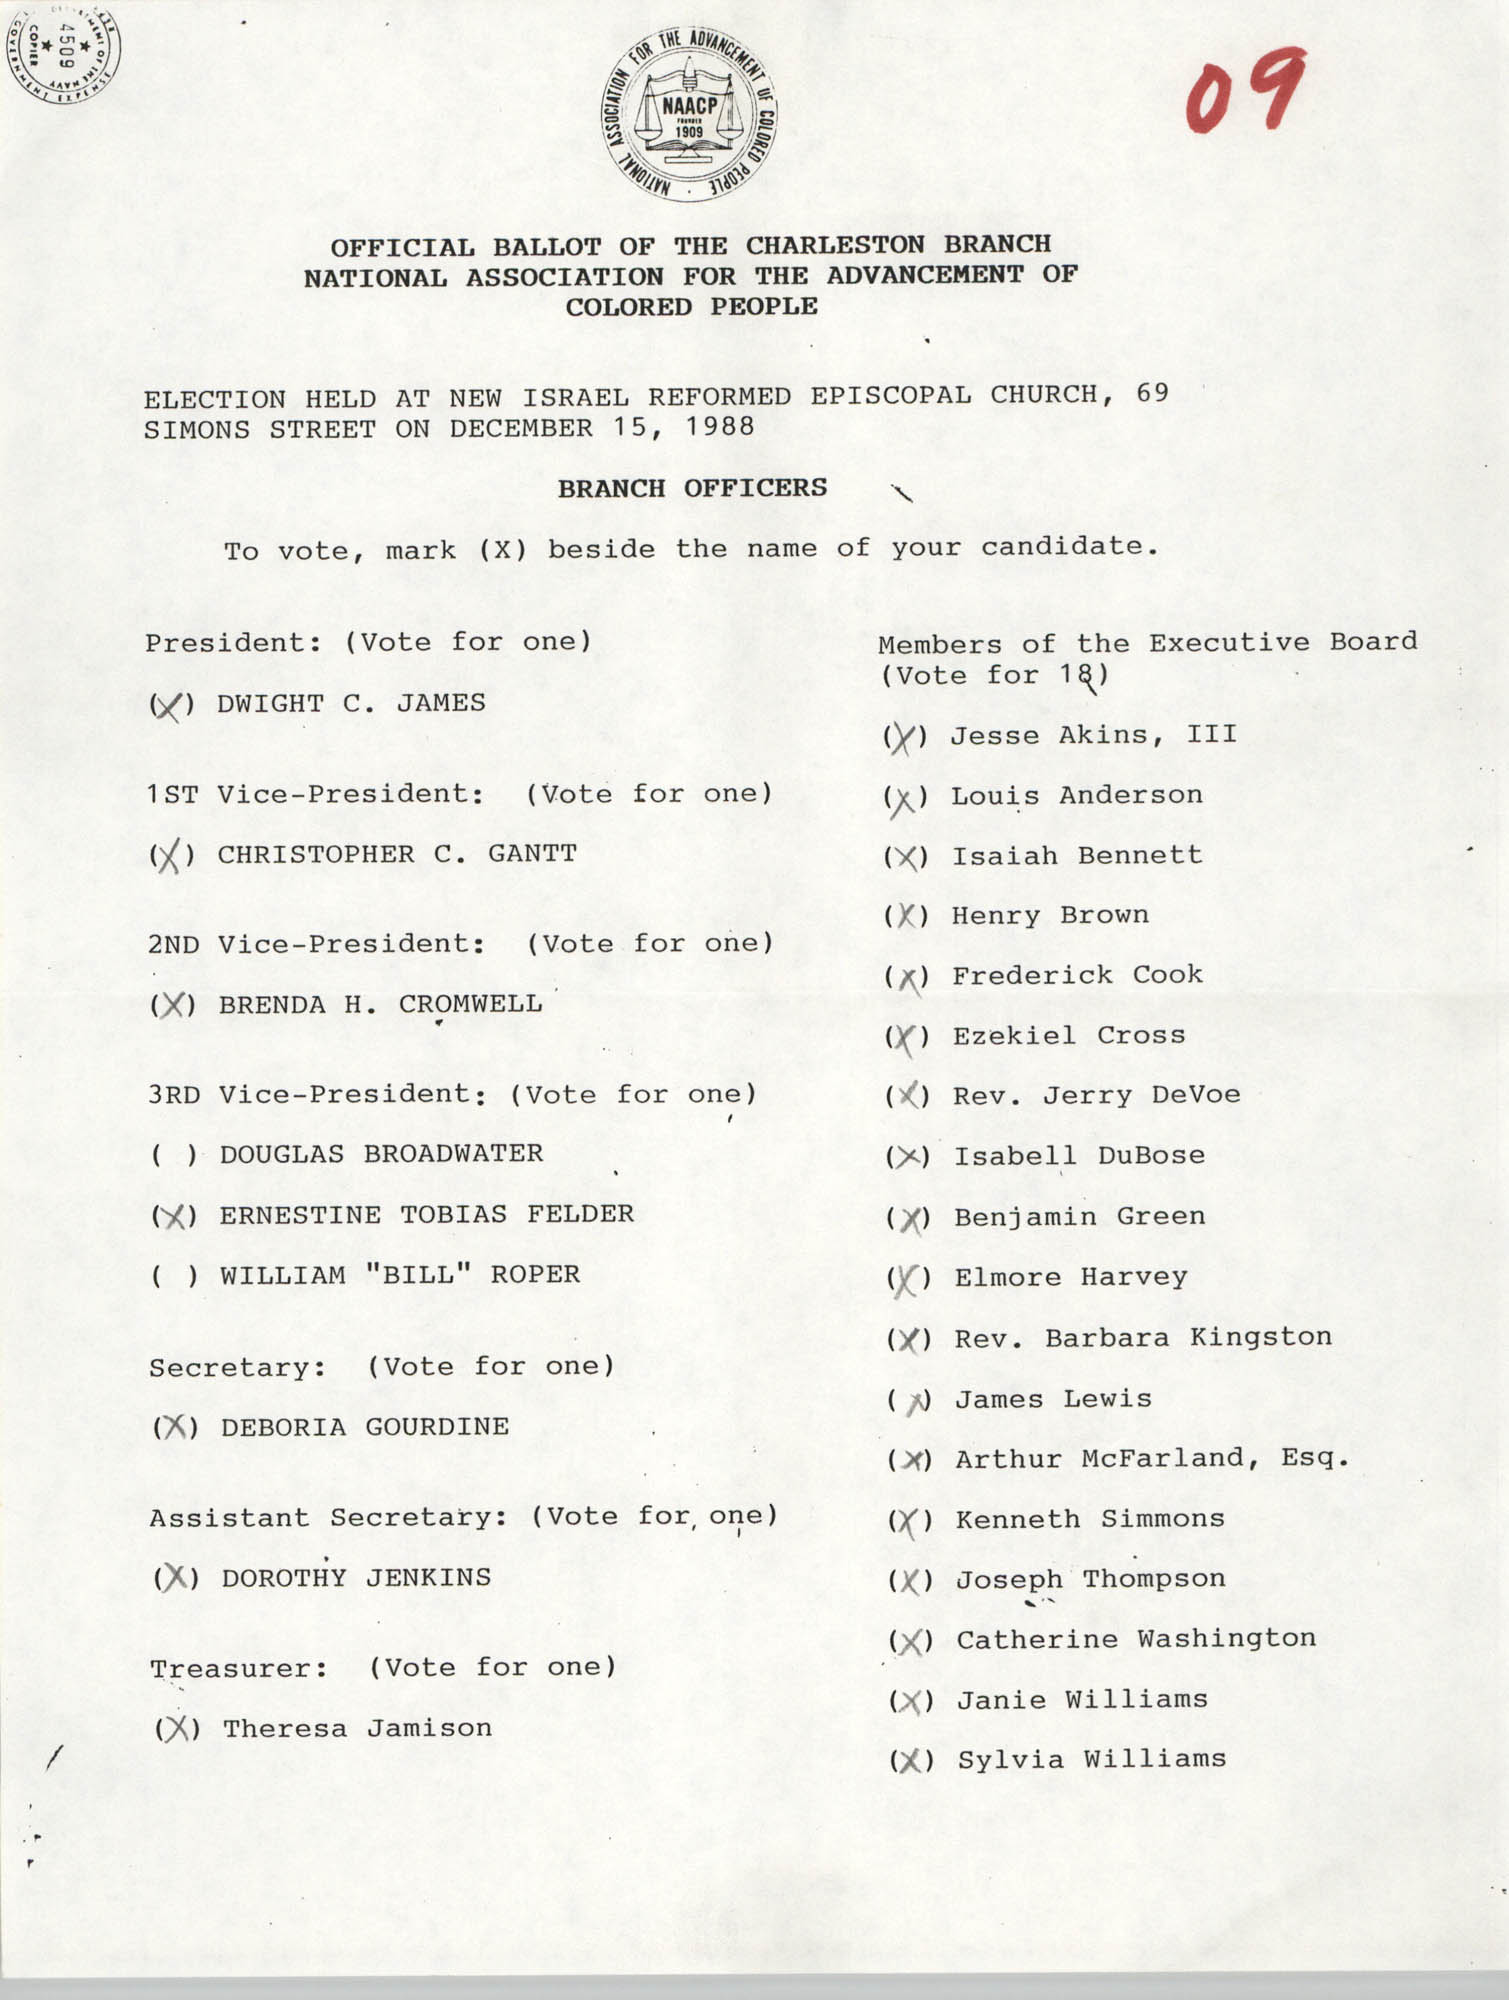 Official Ballot of the Charleston Branch of the NAACP, 09